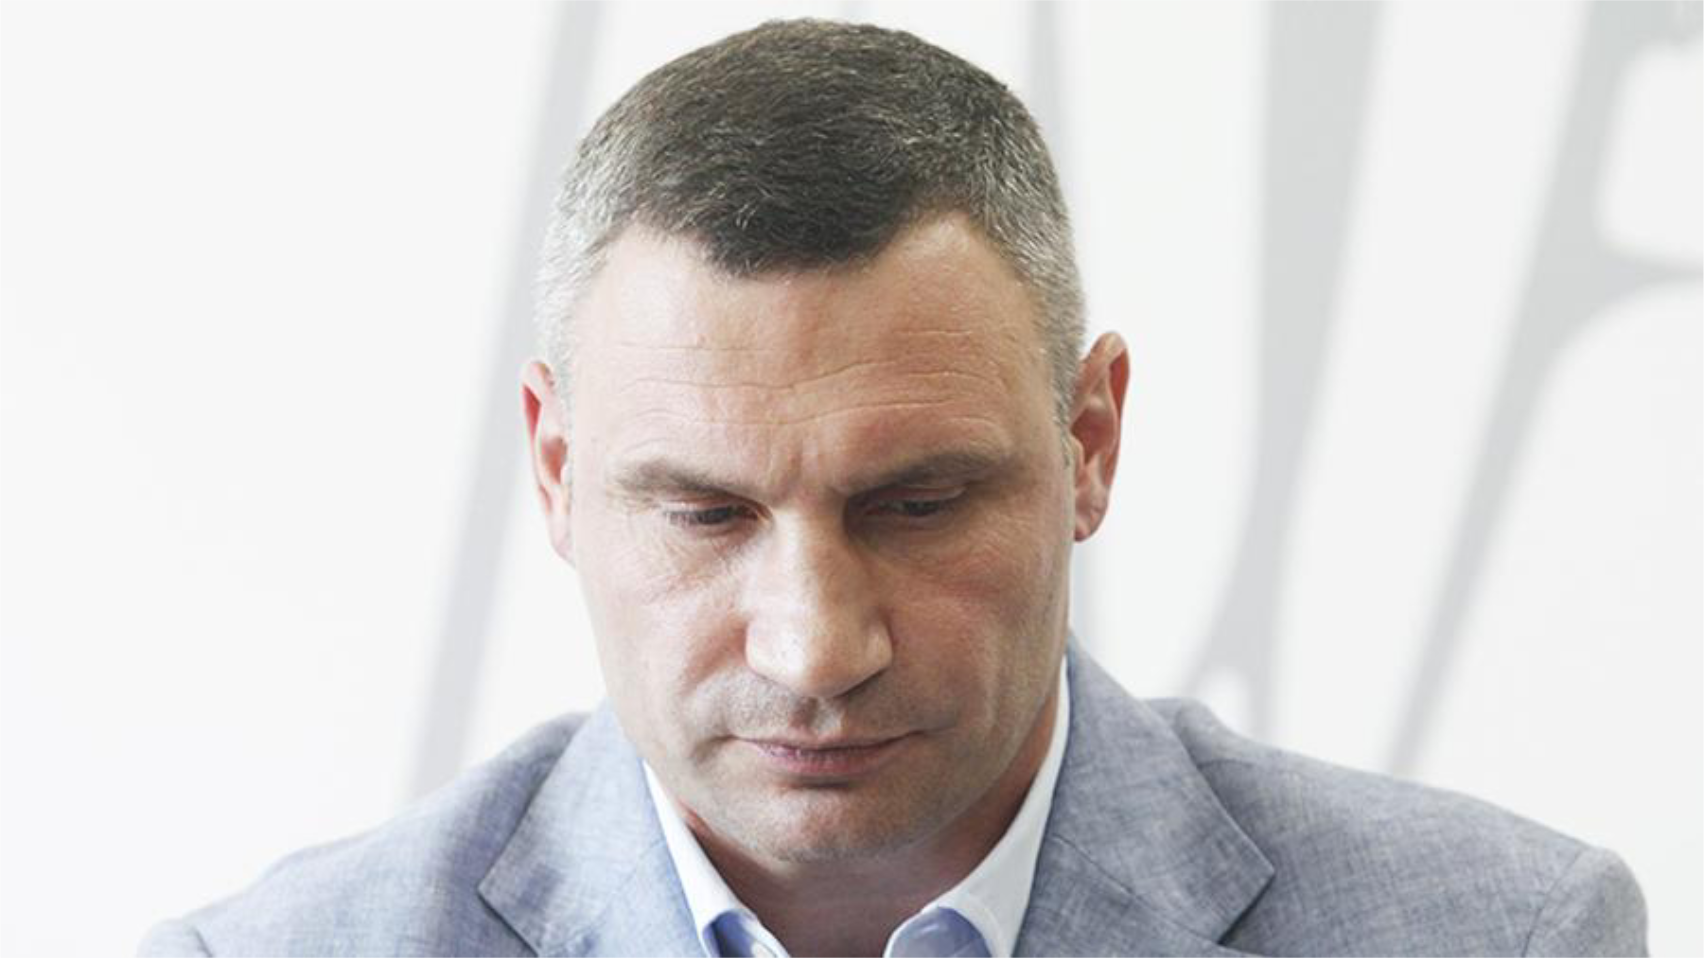 Photo of Klitschko confusing words and insulting patients with COVID-19